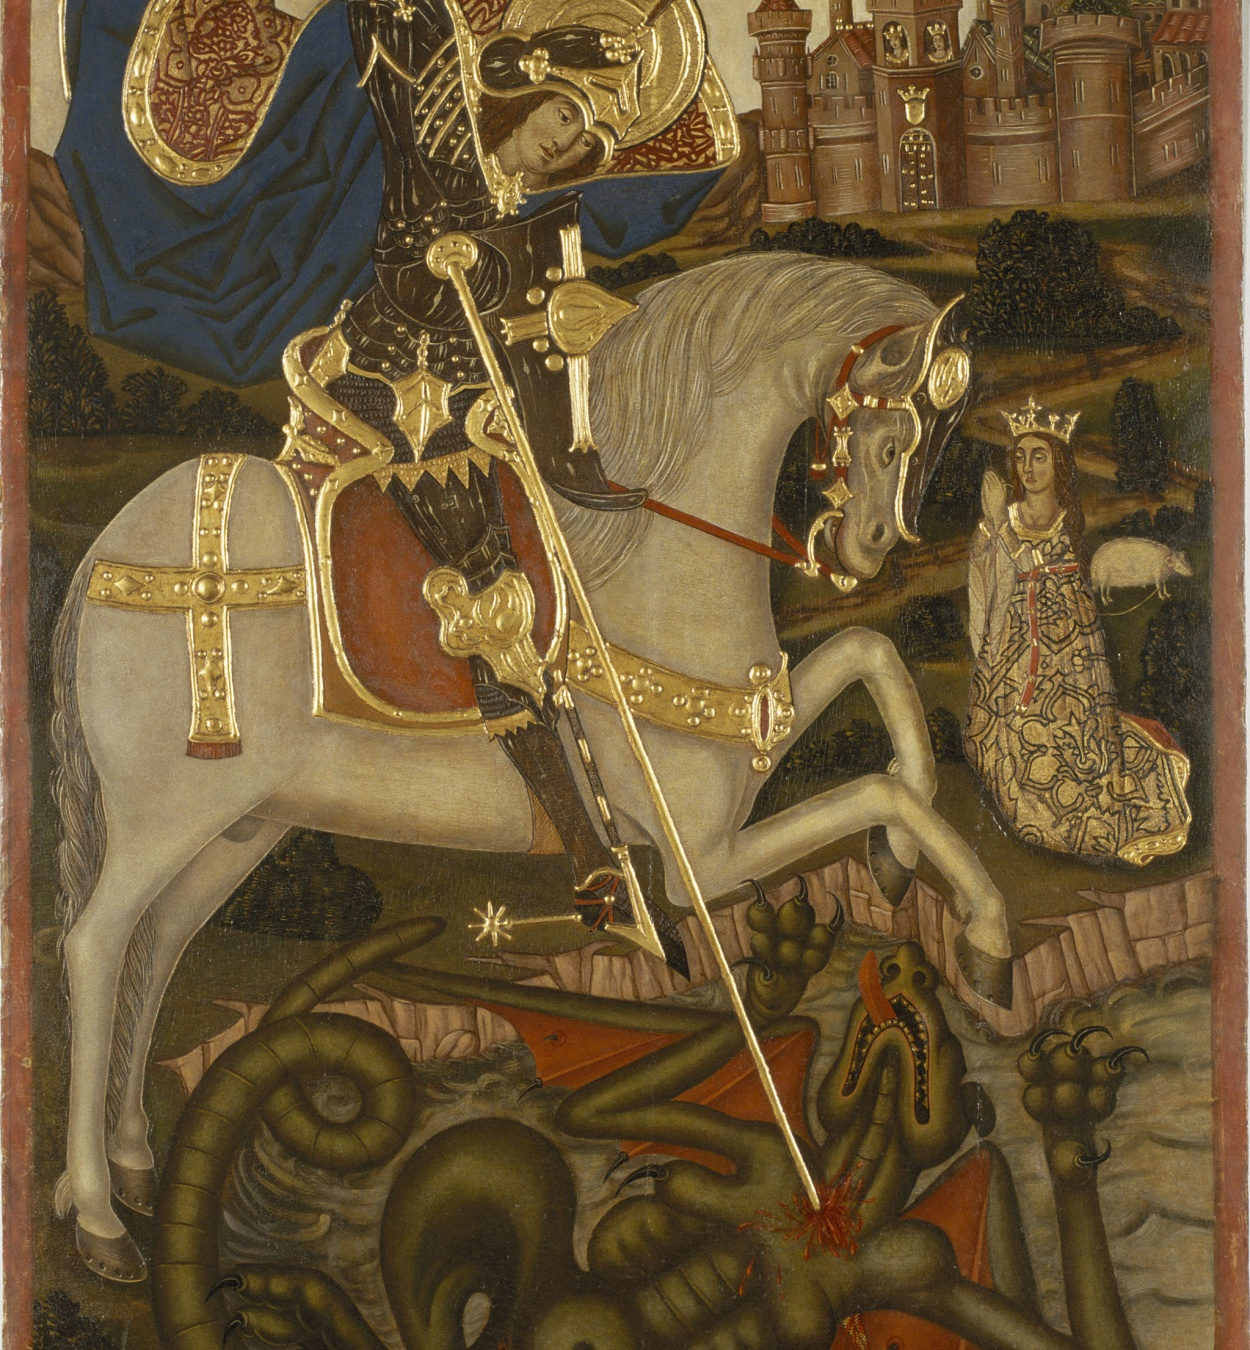 Anònim. Catalunya - Saint George Slaying the Dragon - End of 15th century